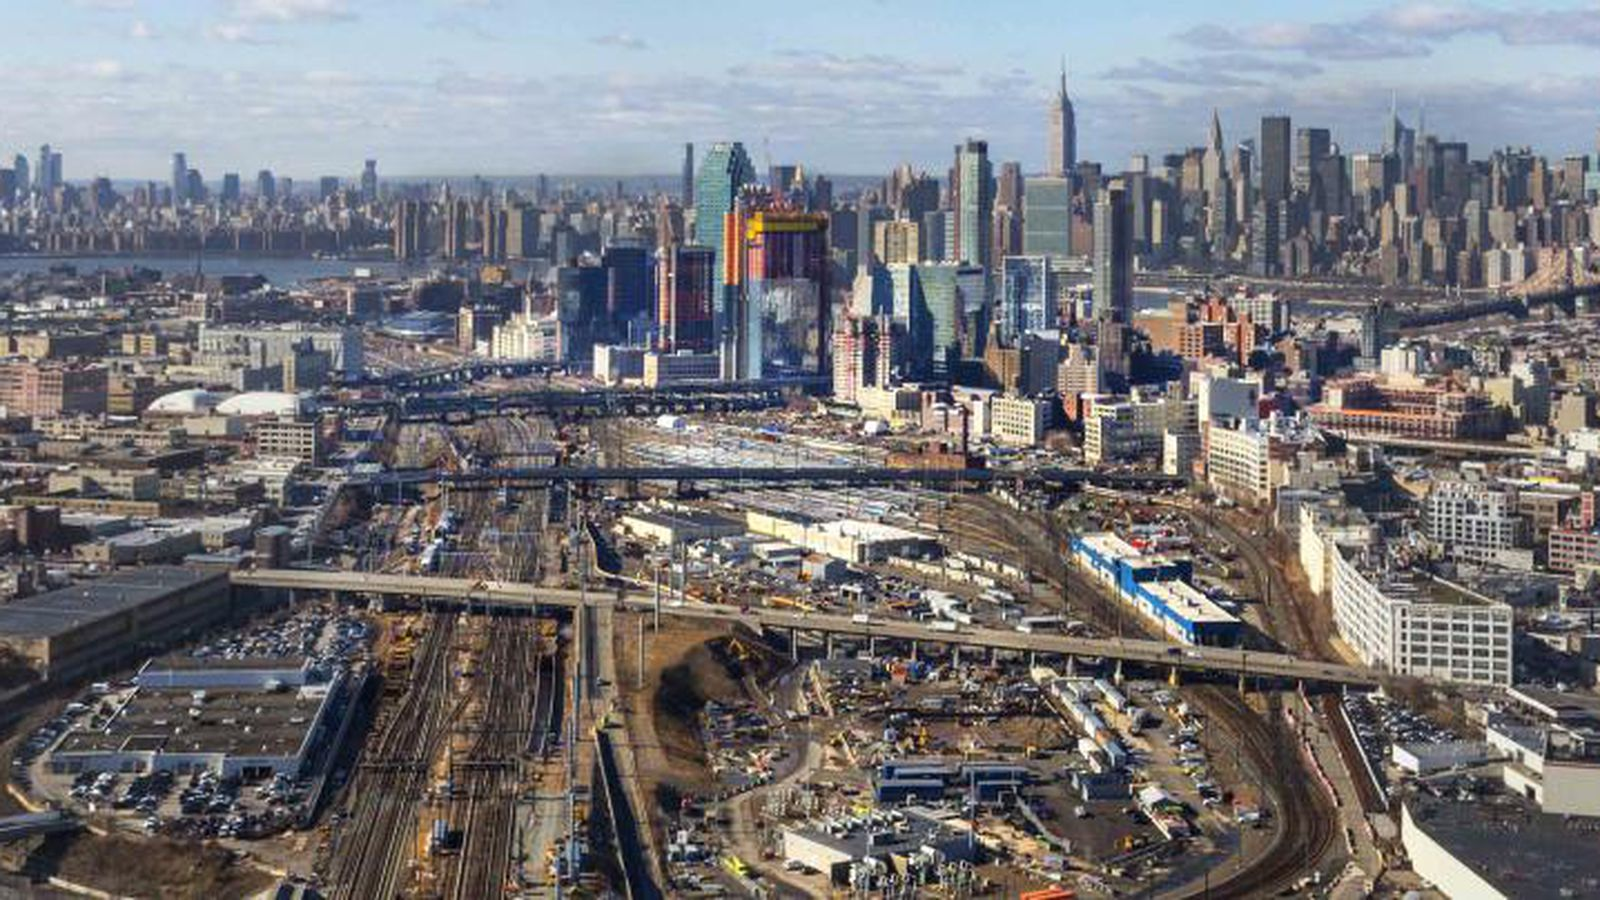 City presents three scenarios for megaproject over Sunnyside railyards  Curbed NY